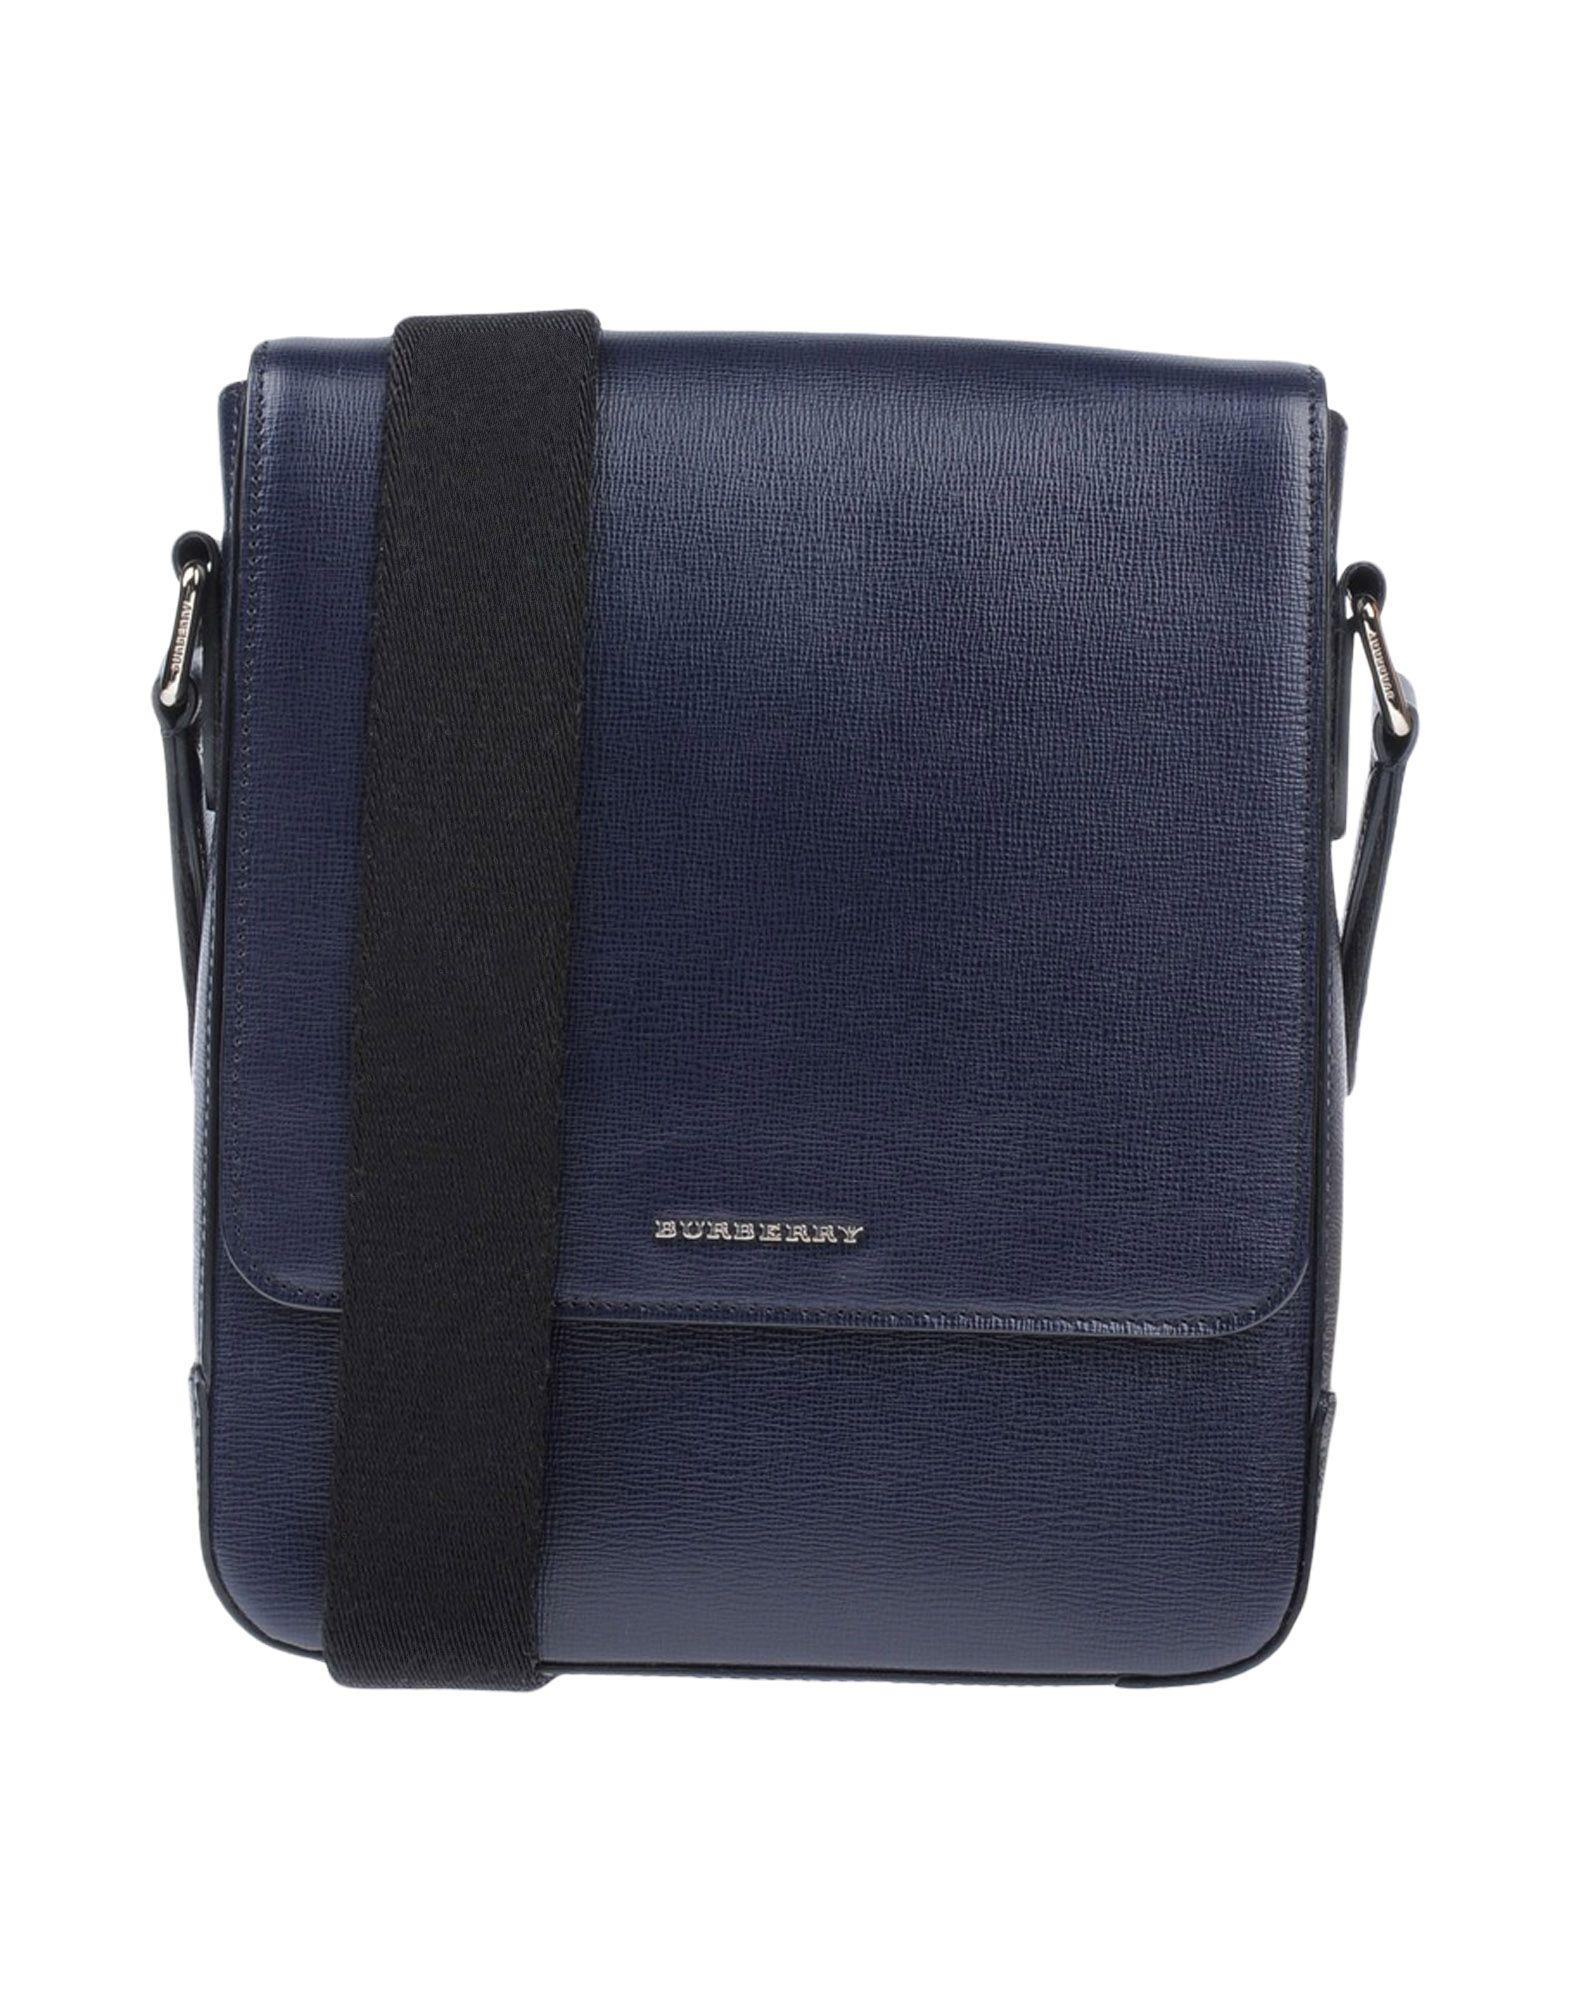 Burberry In Dark Blue